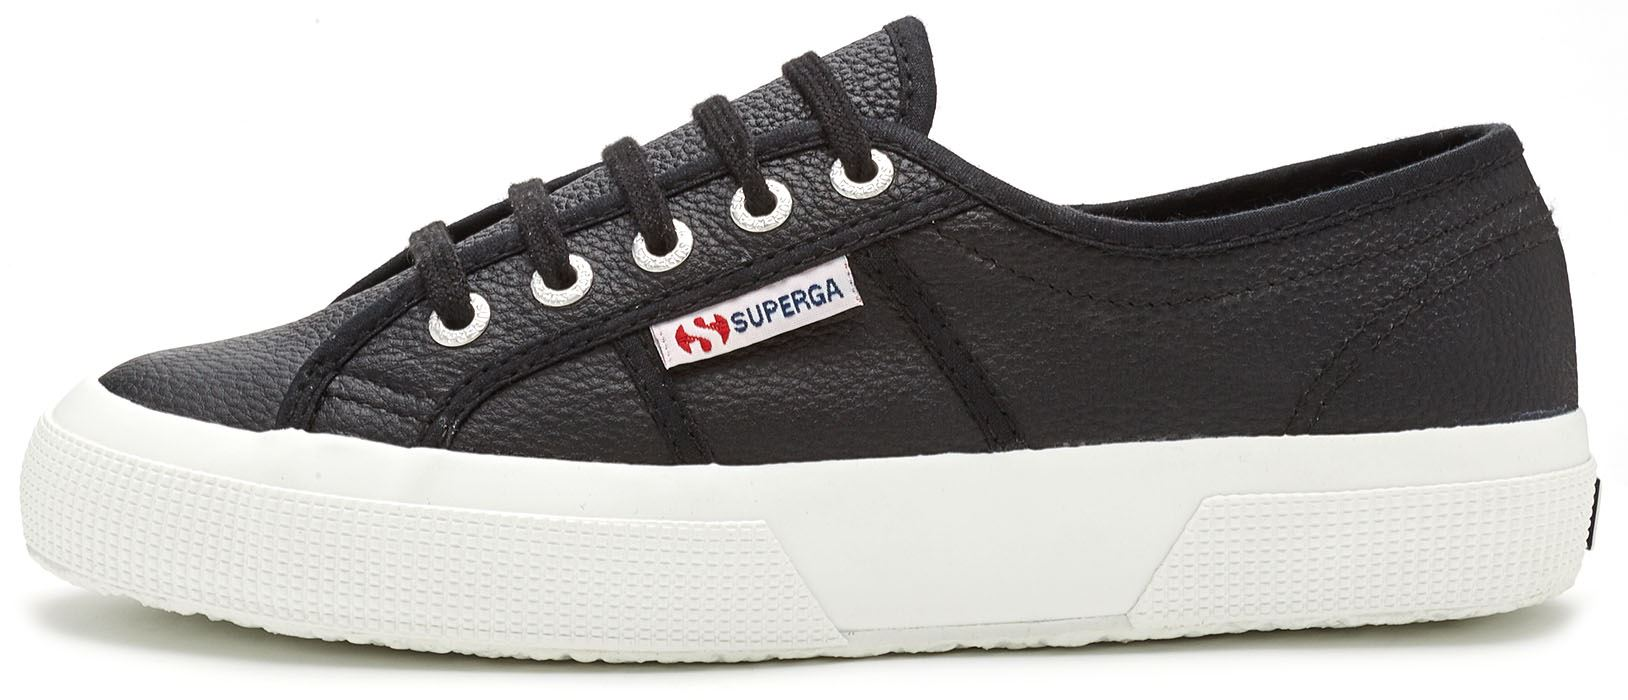 Superga Sneakers - Blanco Y Negro